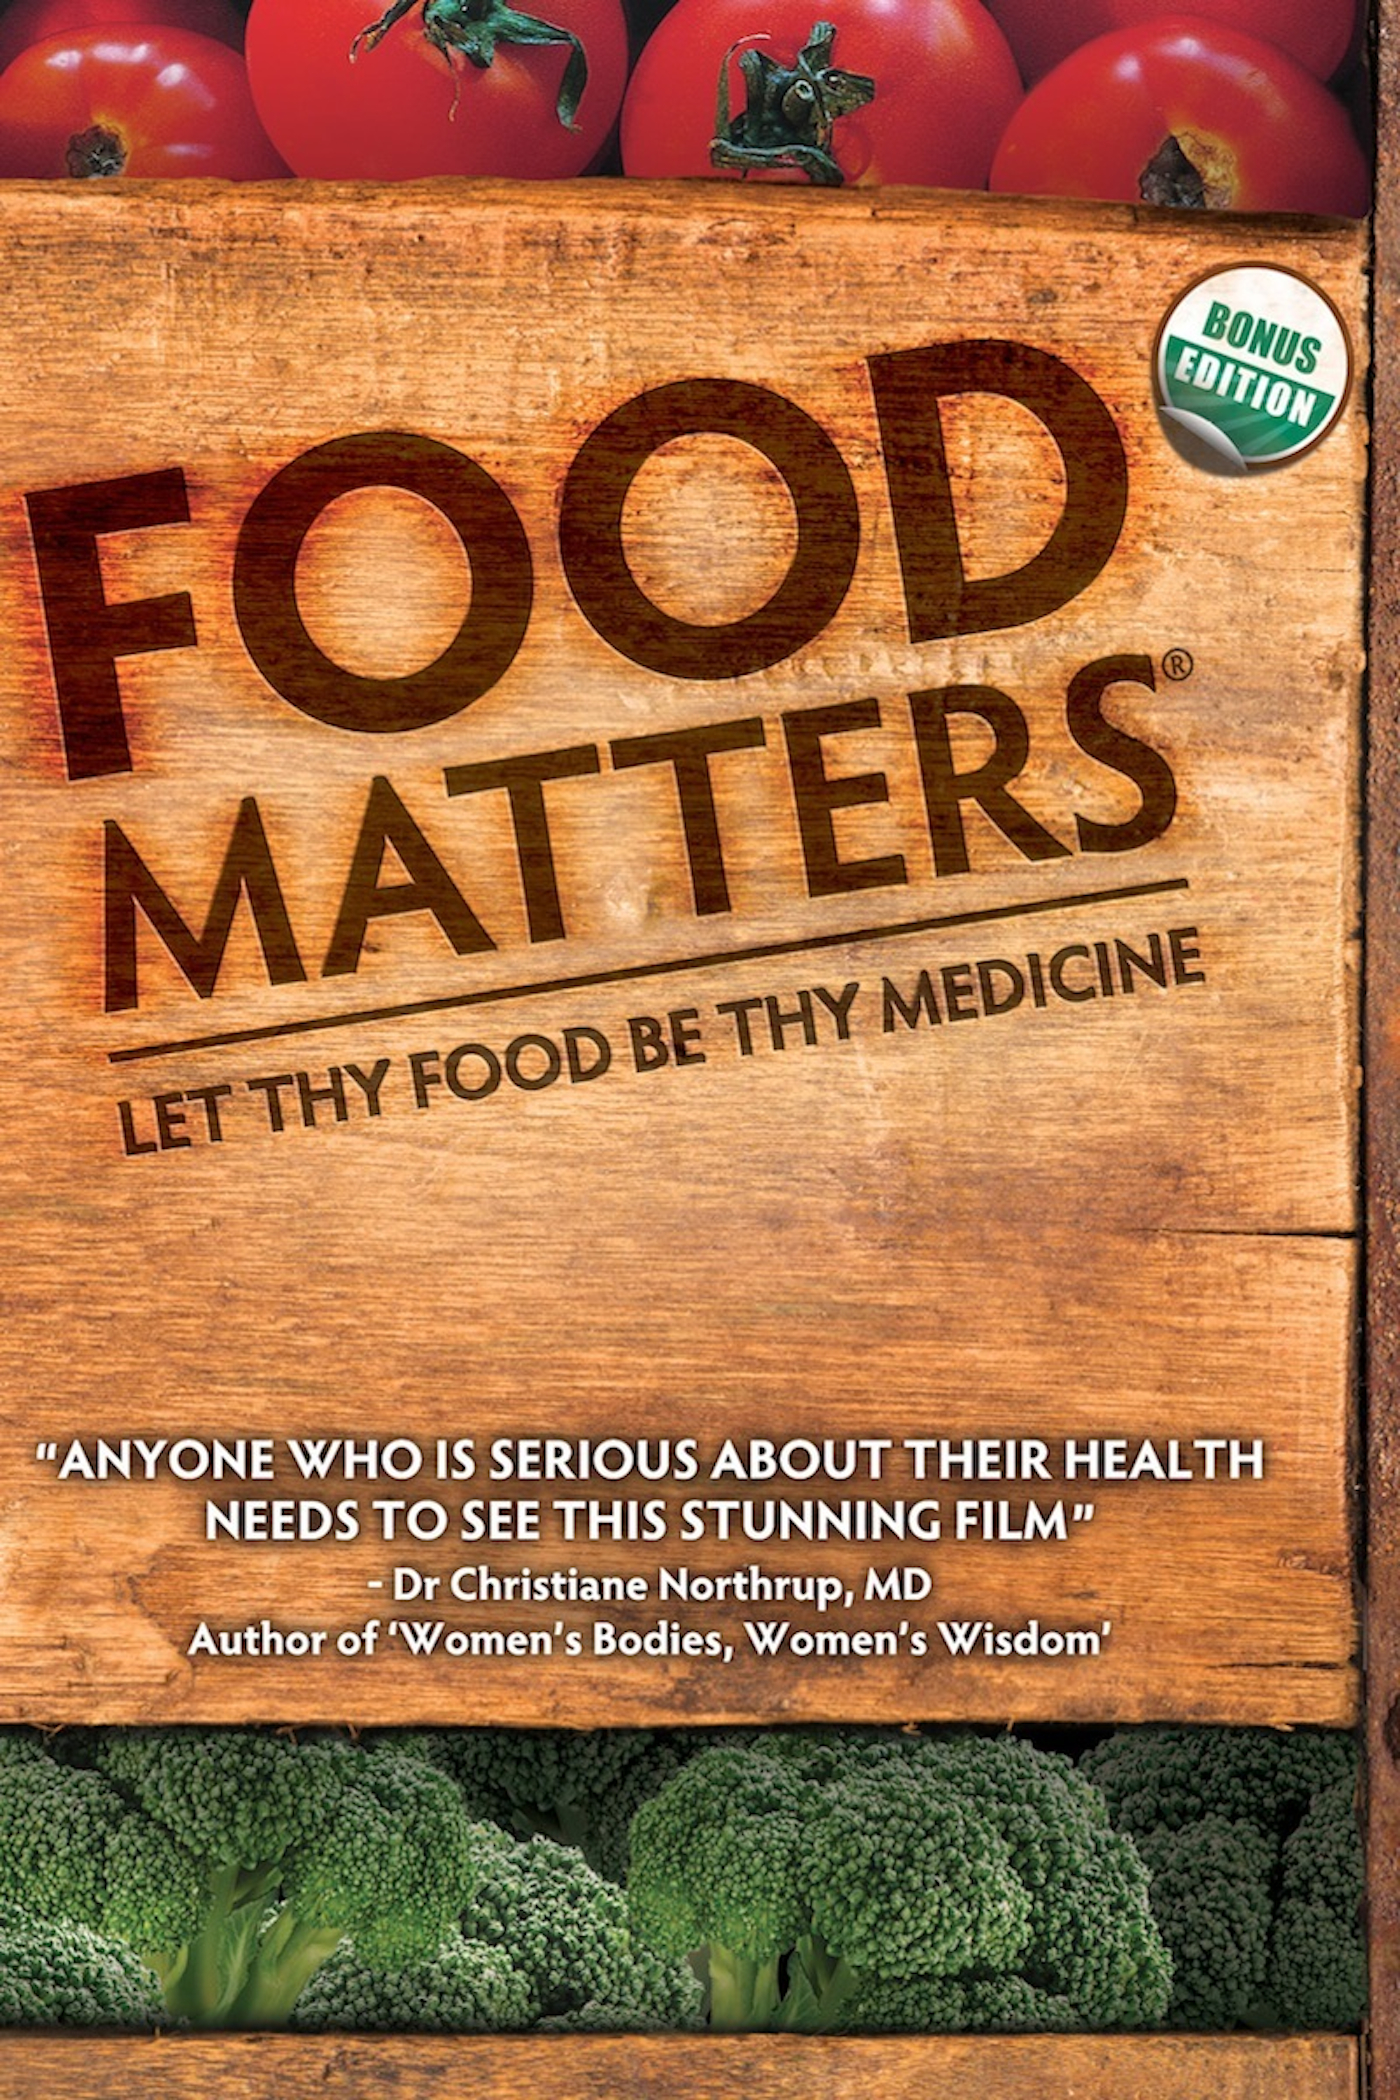 This documentary examines the current state of America's food supply, and suggests that the over-industrialization of food production is making the nation sicker by the imsese.cfors: James Colquhoun, Carlo Ledesma.